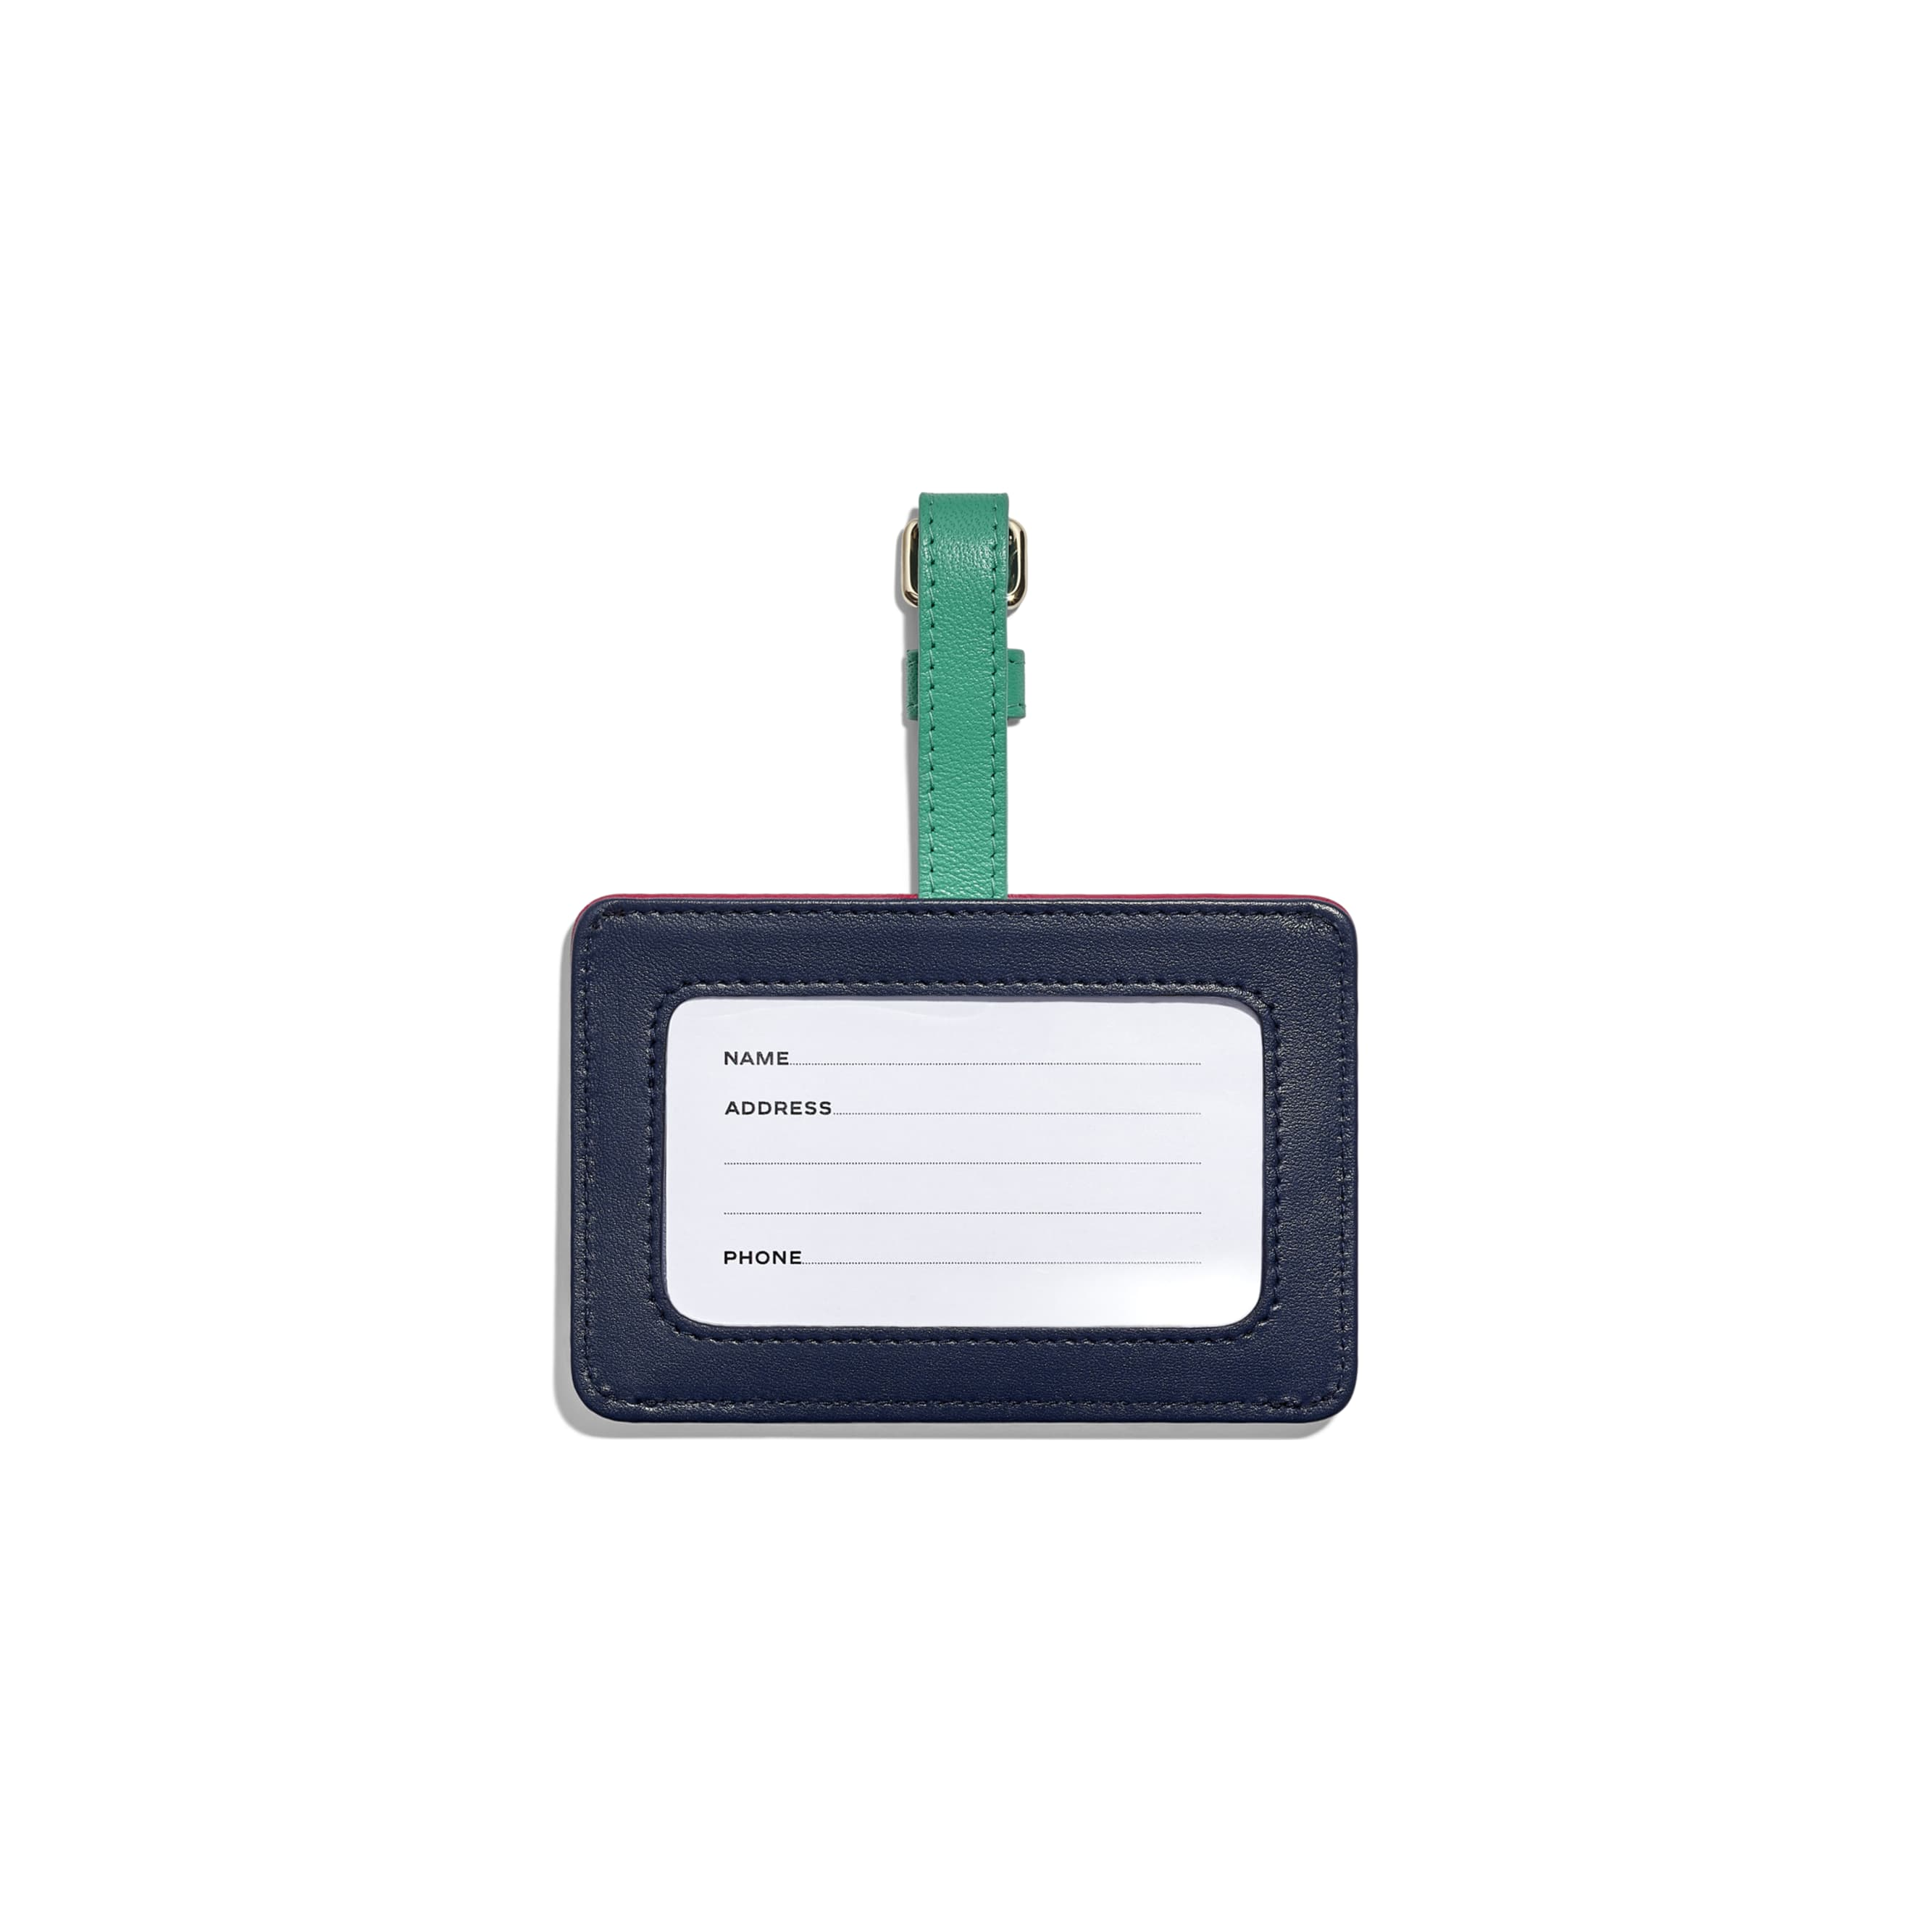 Luggage Tag - Navy Blue, Green & Dark Pink - Goatskin & Gold-Tone Metal - Alternative view - see standard sized version